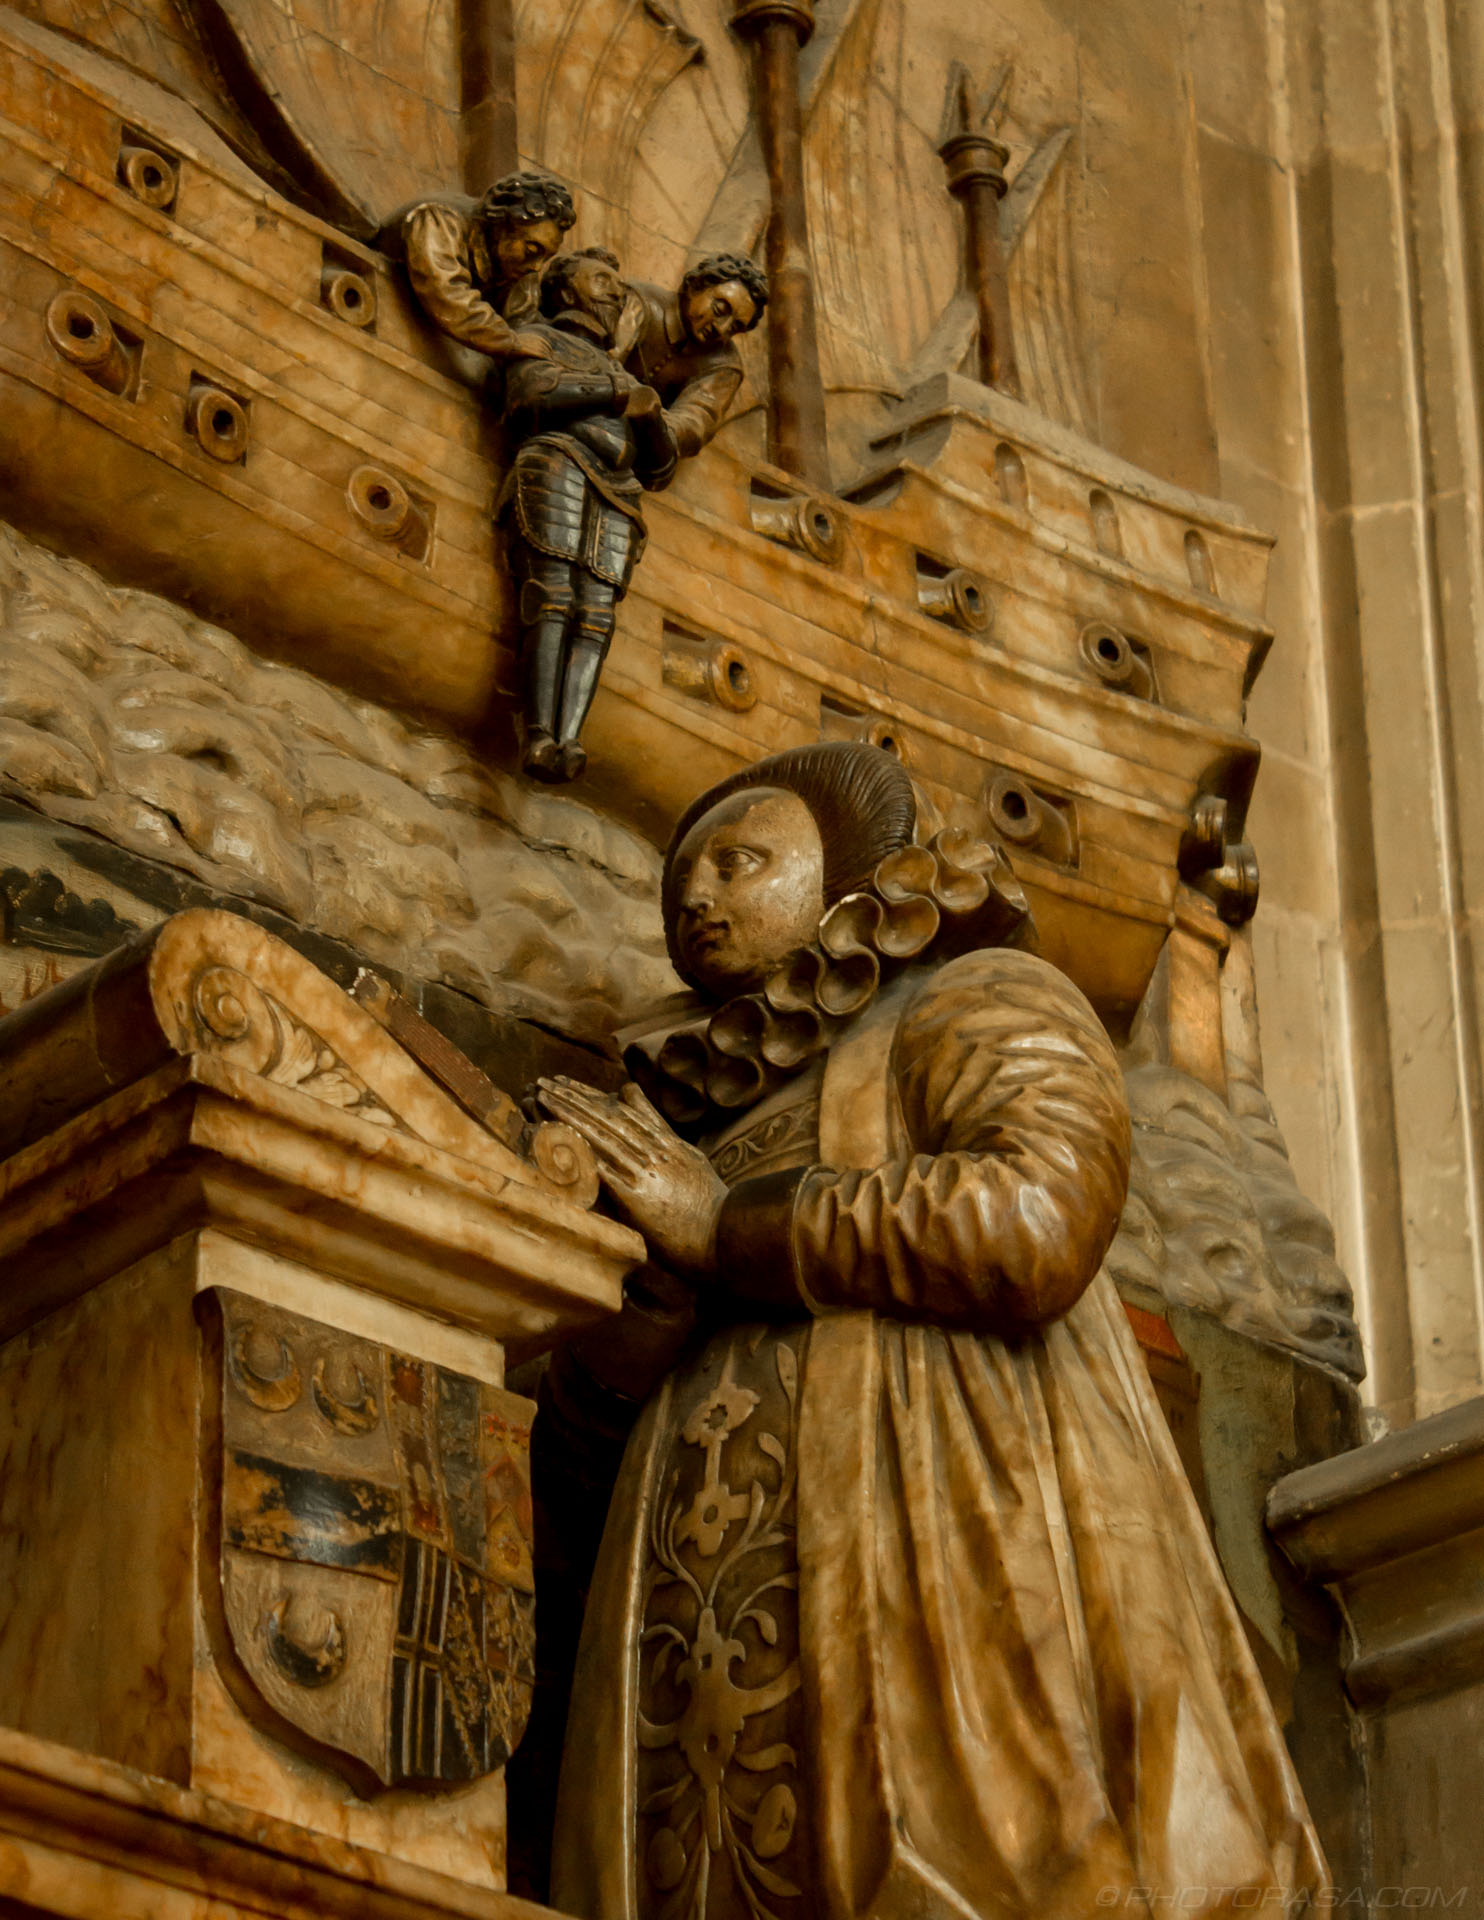 http://photorasa.com/canterbury-cathedral/close-up-of-sir-james-hays-monument-showing-suicide-by-drowning/